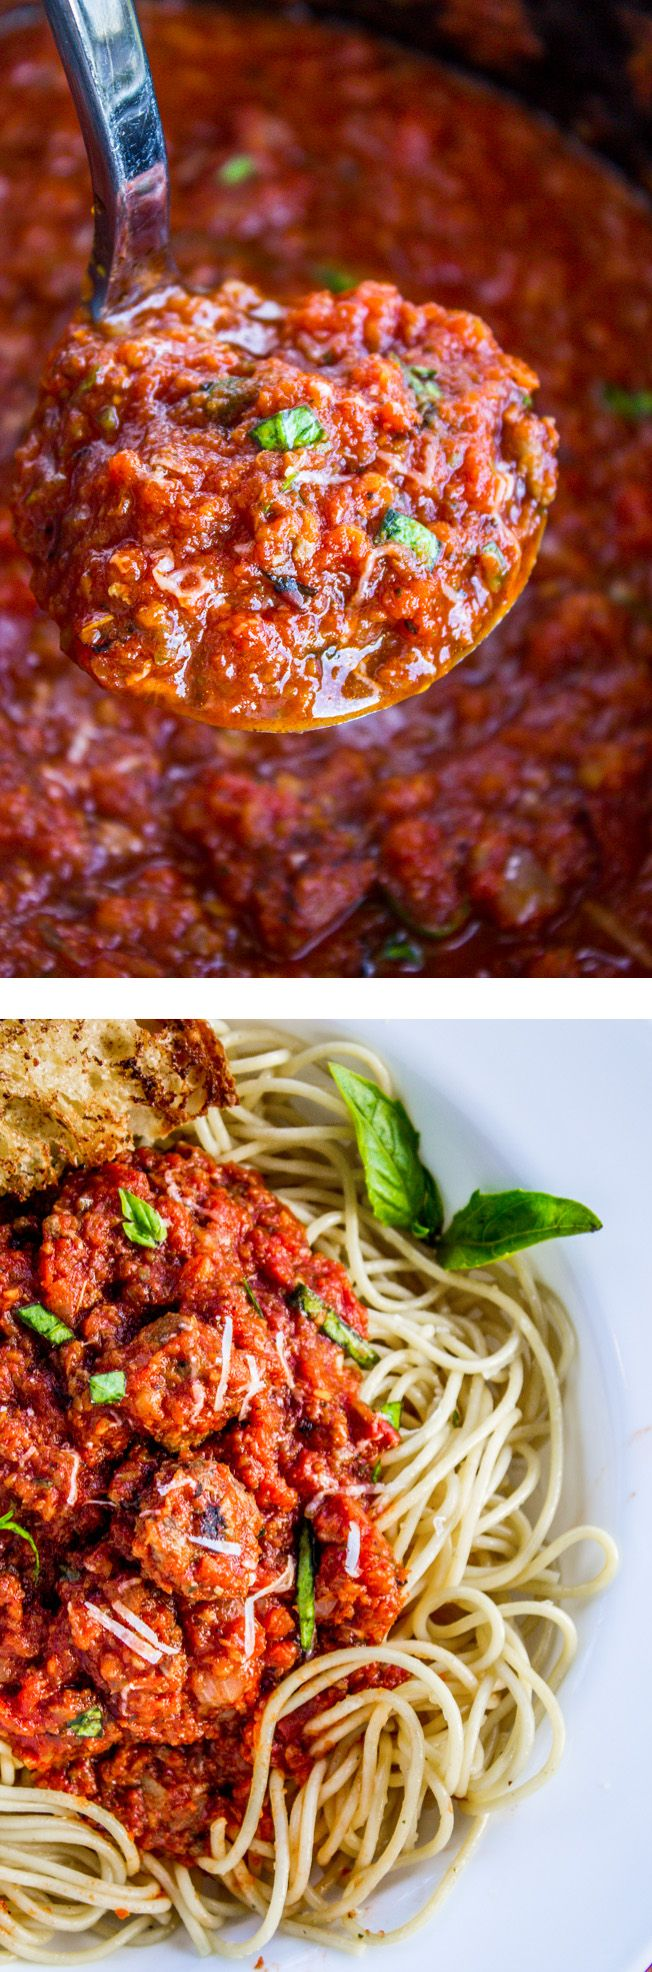 Healthy Slow Cooker Spaghetti Meat Sauce from The Food Charlatan // This recipe has zucchini and carrots hidden in it! Also chunks of sweet Italian sausage. It is so flavorful, you hardly need the pasta! (I said hardly..but let's be real) Perfect for making a huge batch and then freezing some for a rainy day.